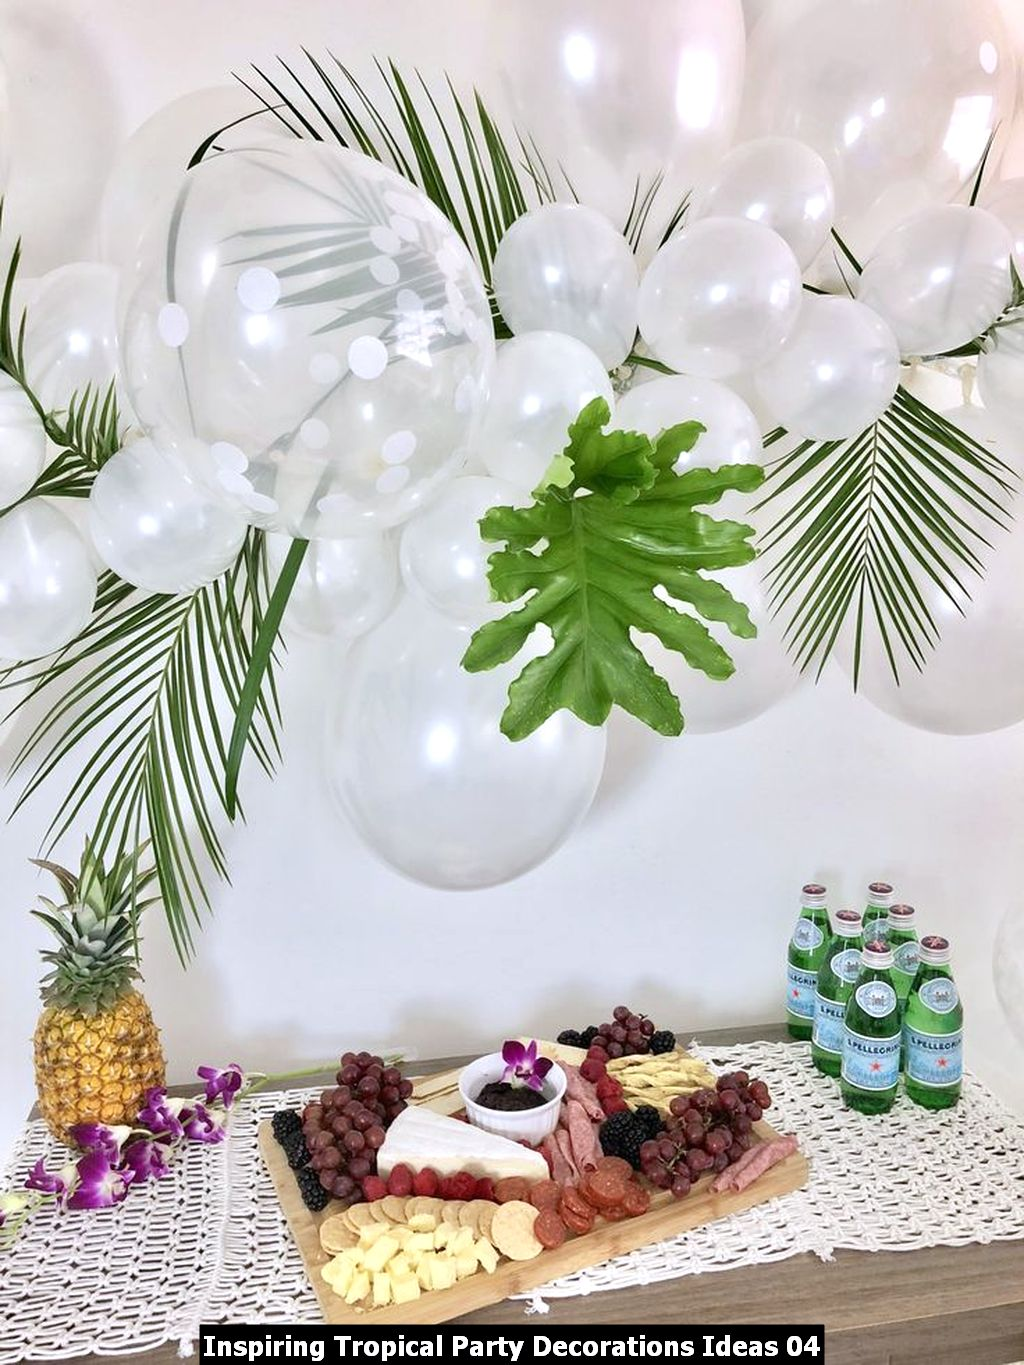 Inspiring Tropical Party Decorations Ideas 04